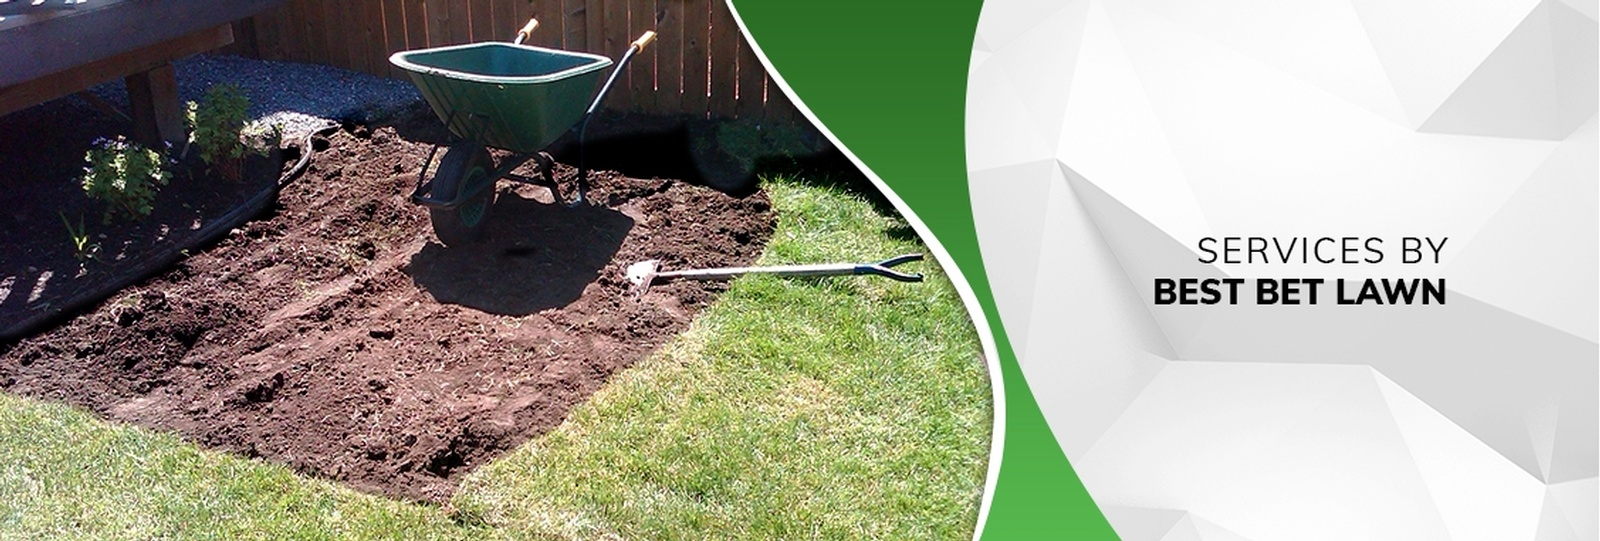 Lawn Services in Calgary